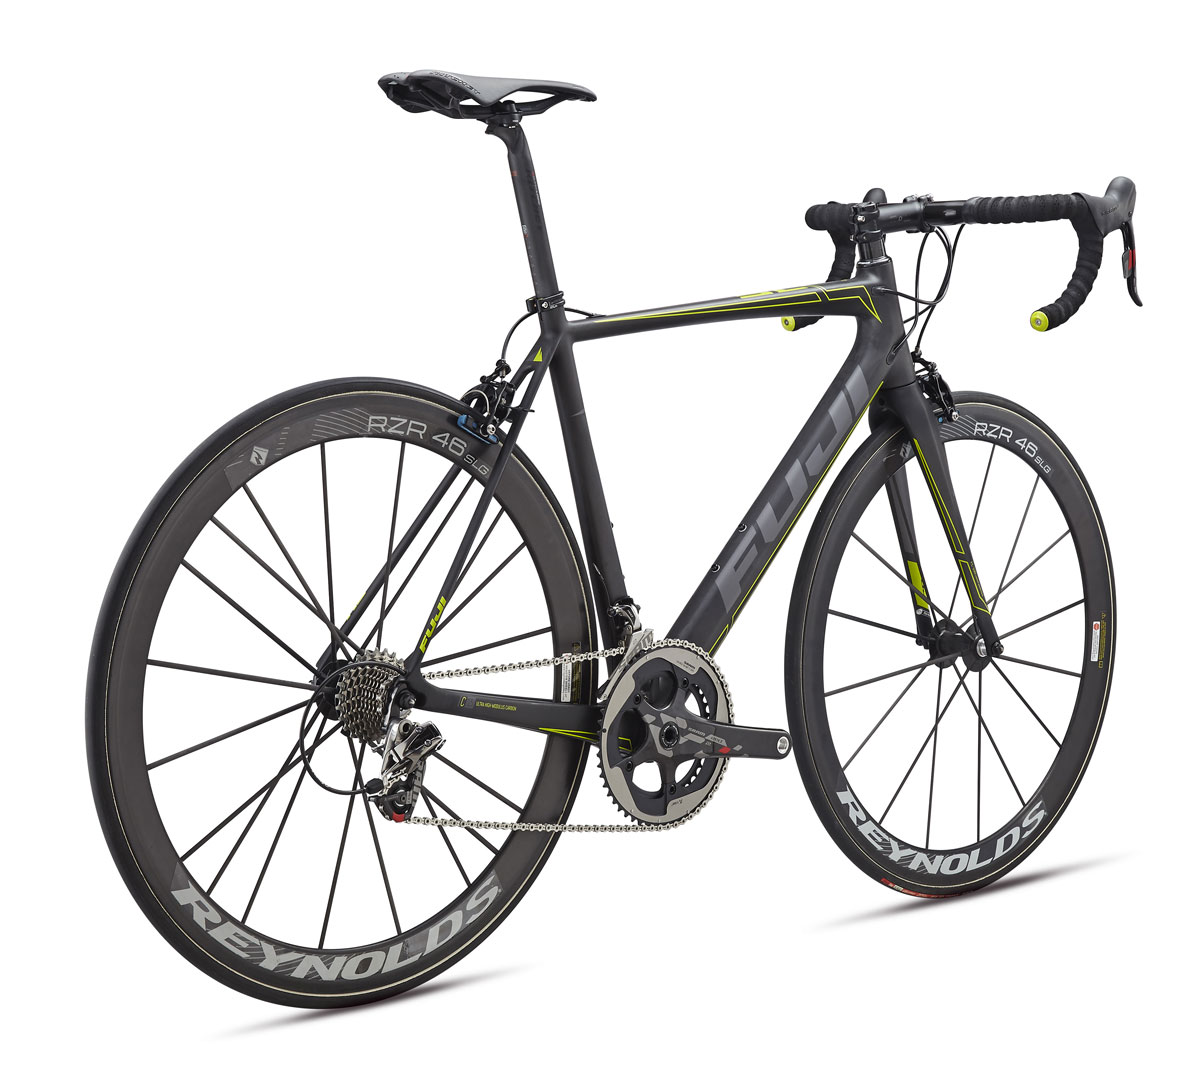 2016 Fuji SL 1.1 with SRAM Red 22 and Reynolds RZR 46 wheelset: $9,999.